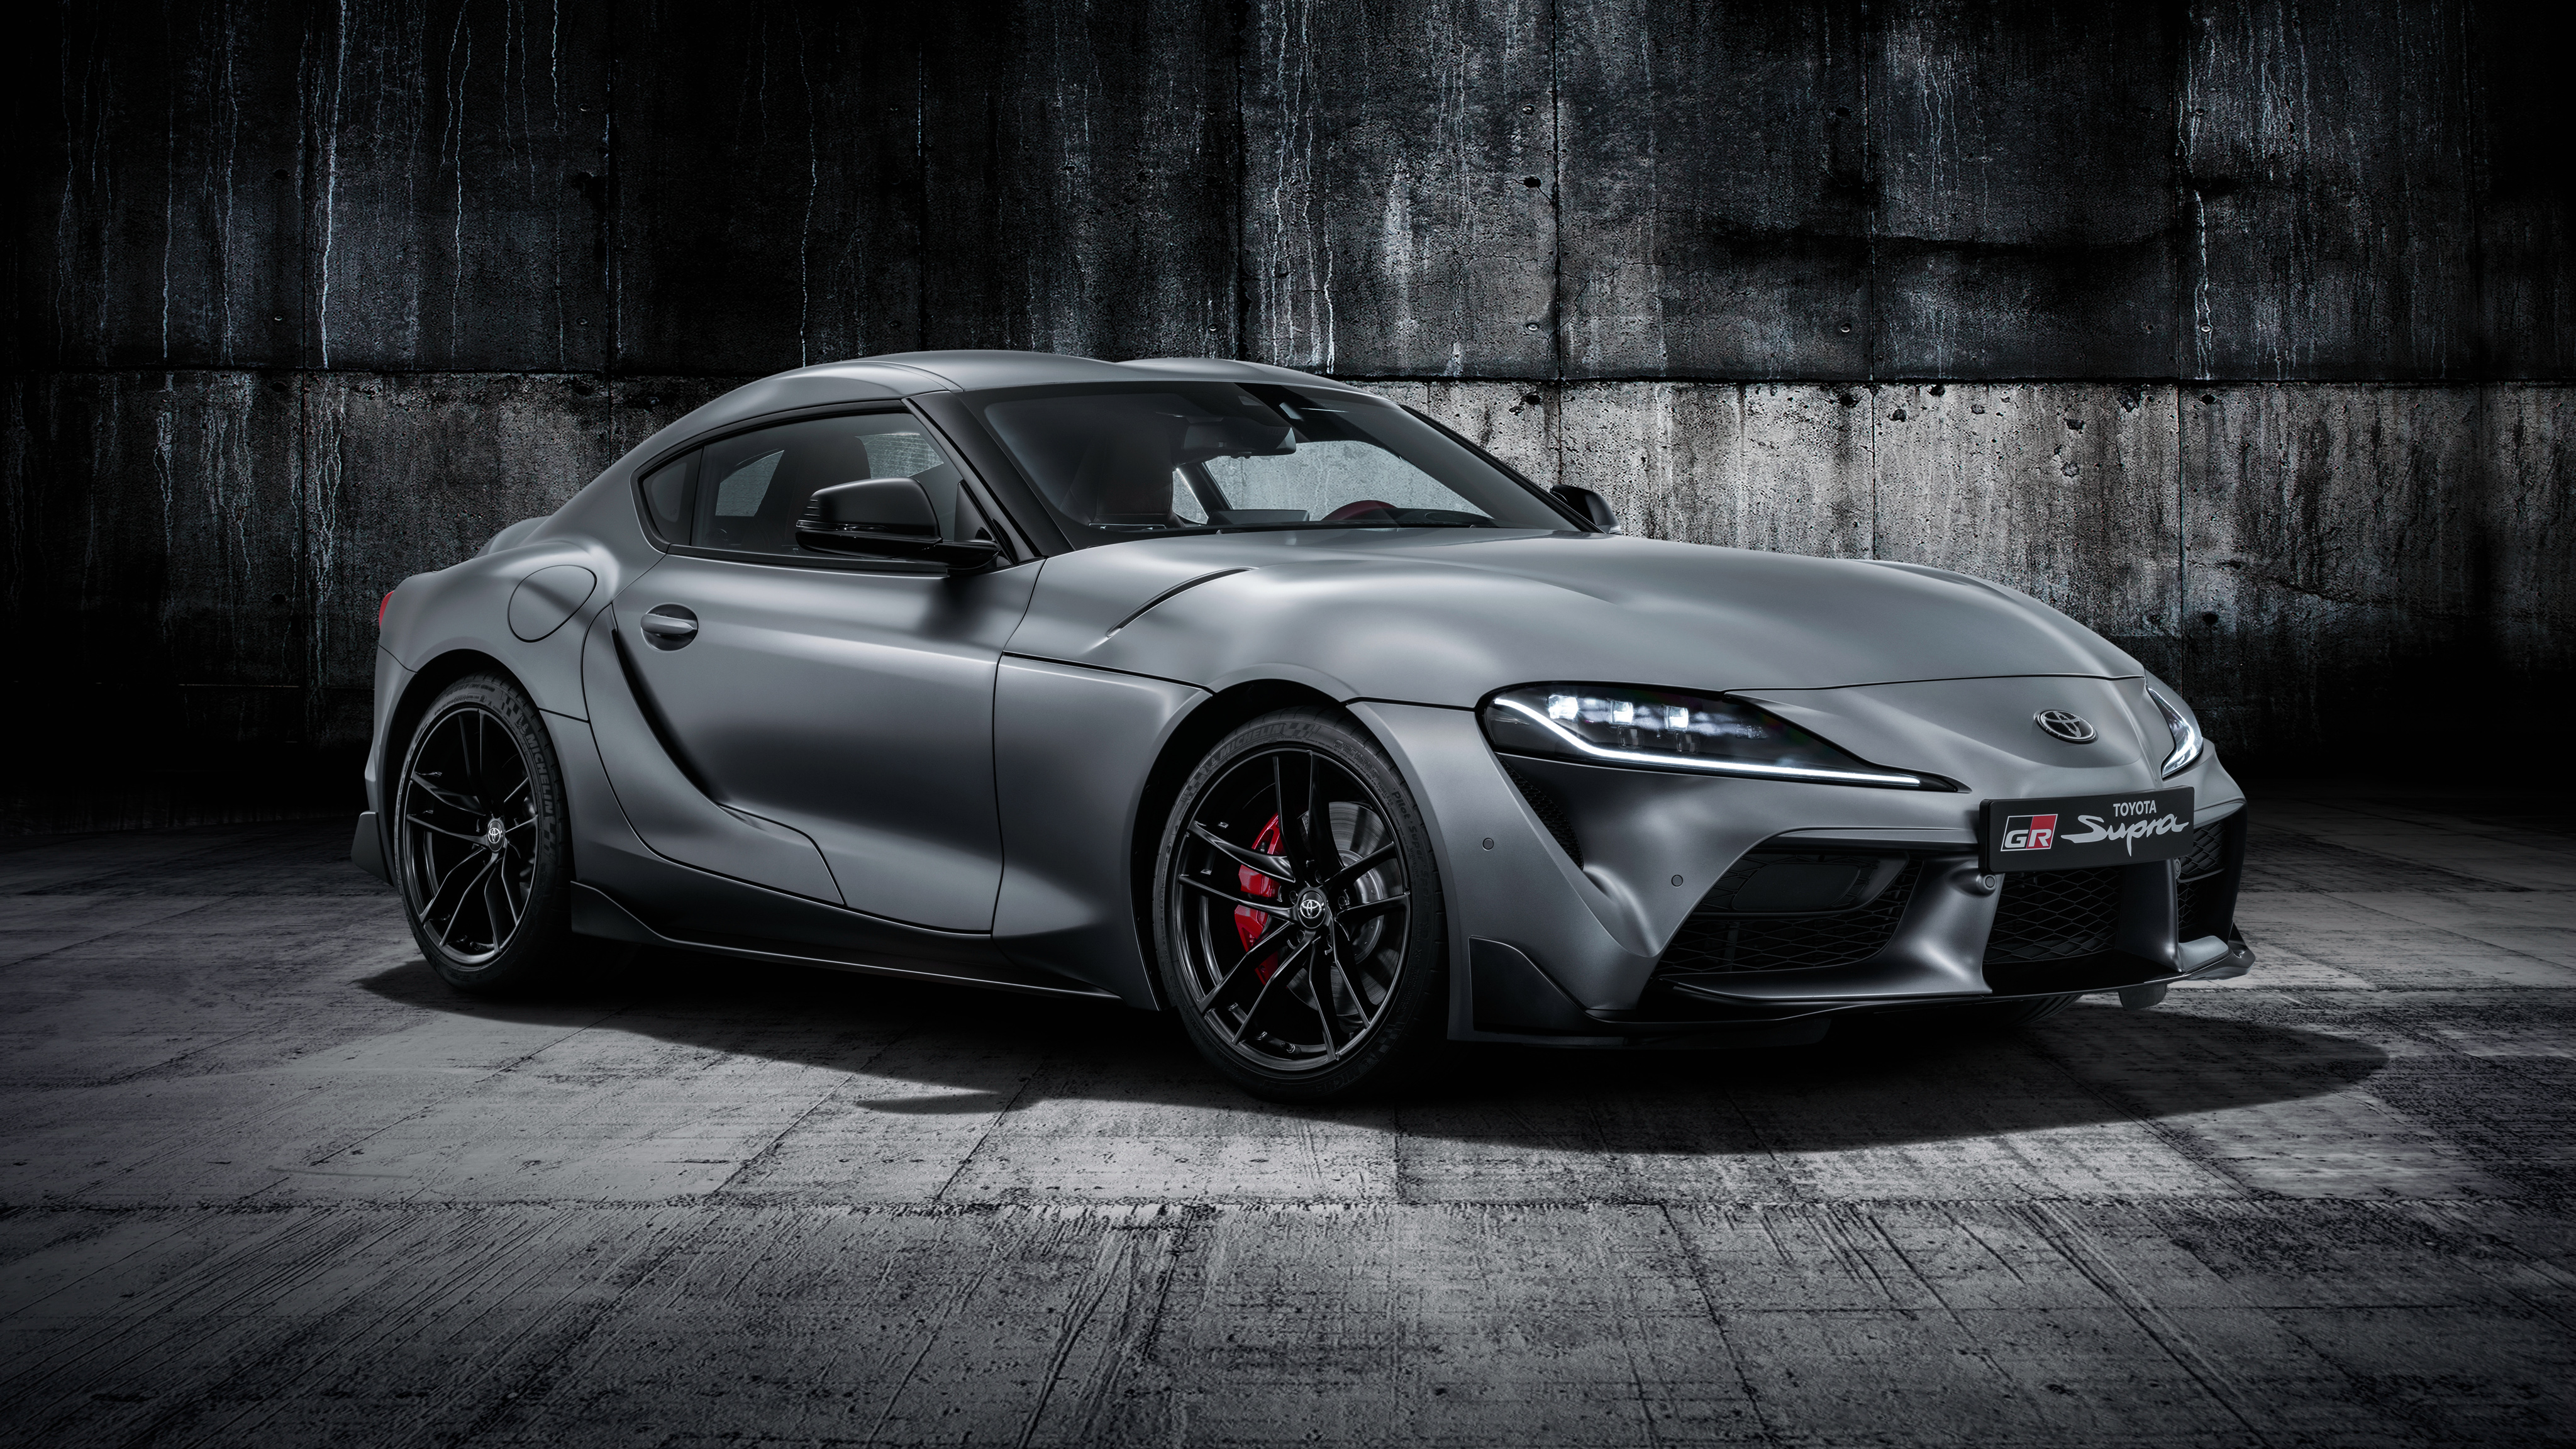 Toyota Gr Supra A90 Edition 2019 4k Wallpaper Hd Car